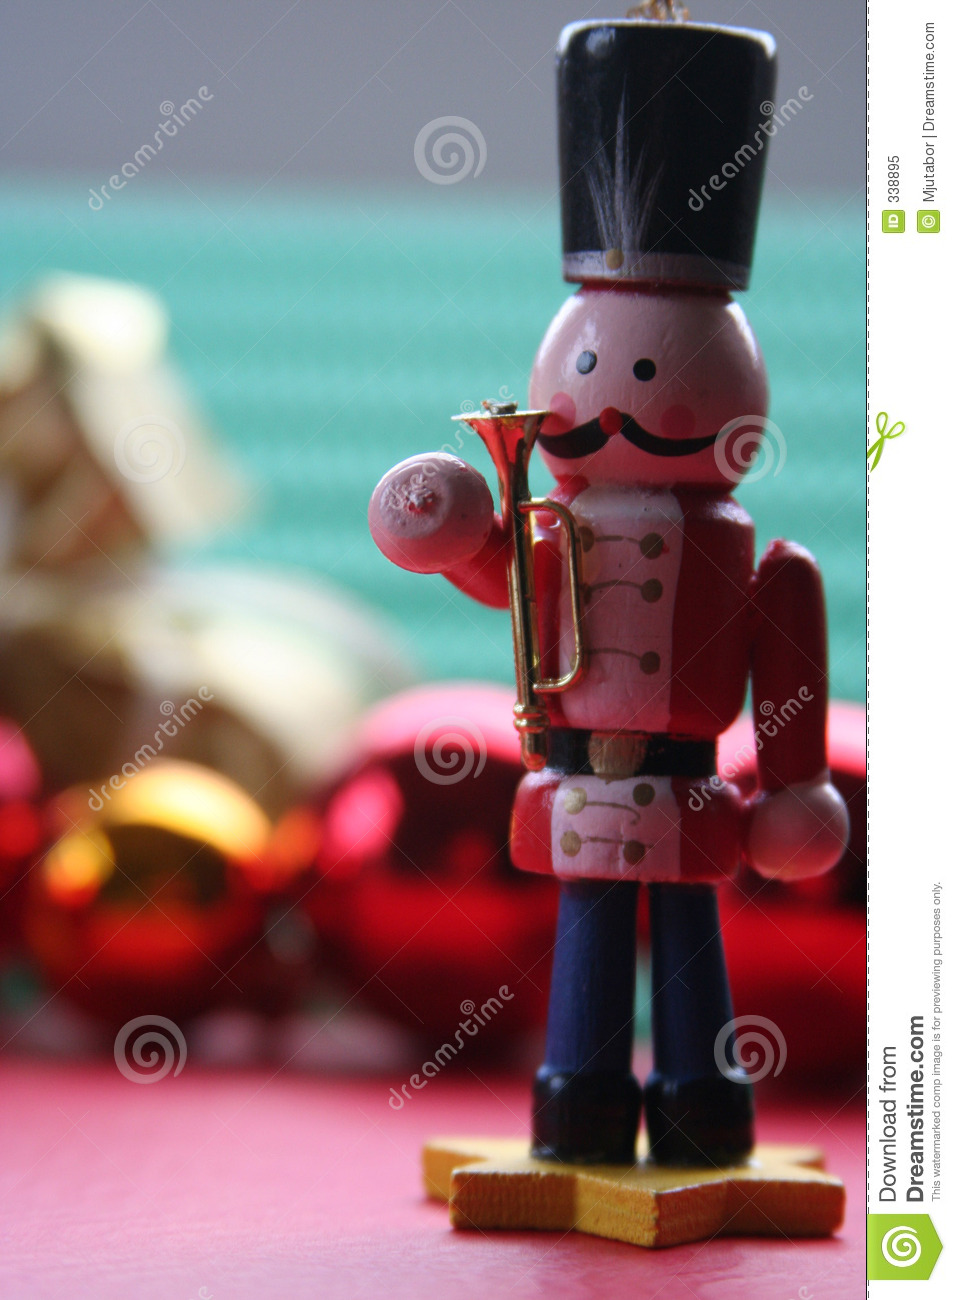 download christmas decoration toy soldier stock image image of antique wooden 338895